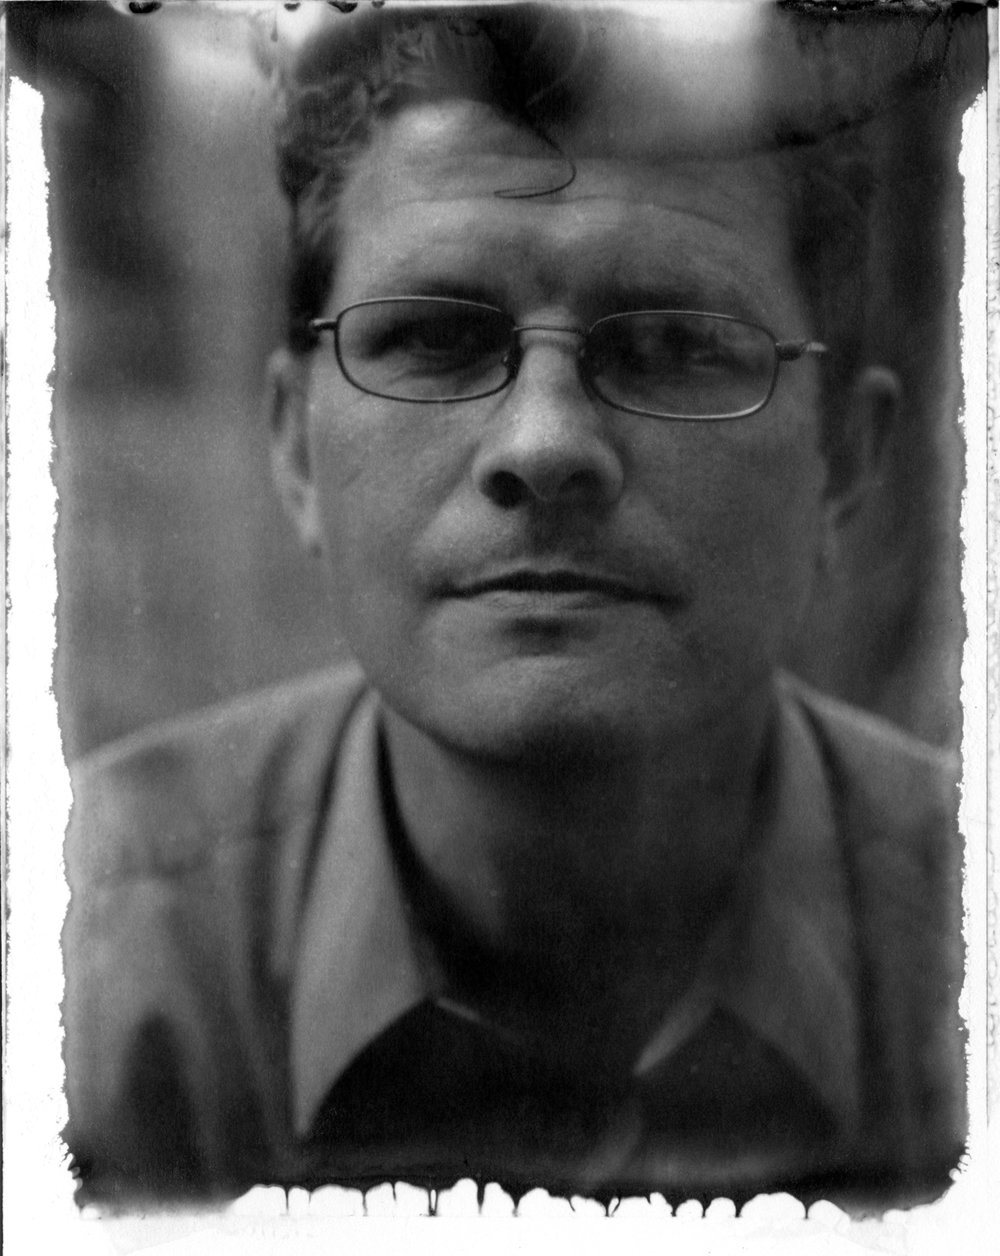 Portrait of Zeb Andrews - Captured by Jim Hair on a Graflex Crown Graphic with New55 PN Film.